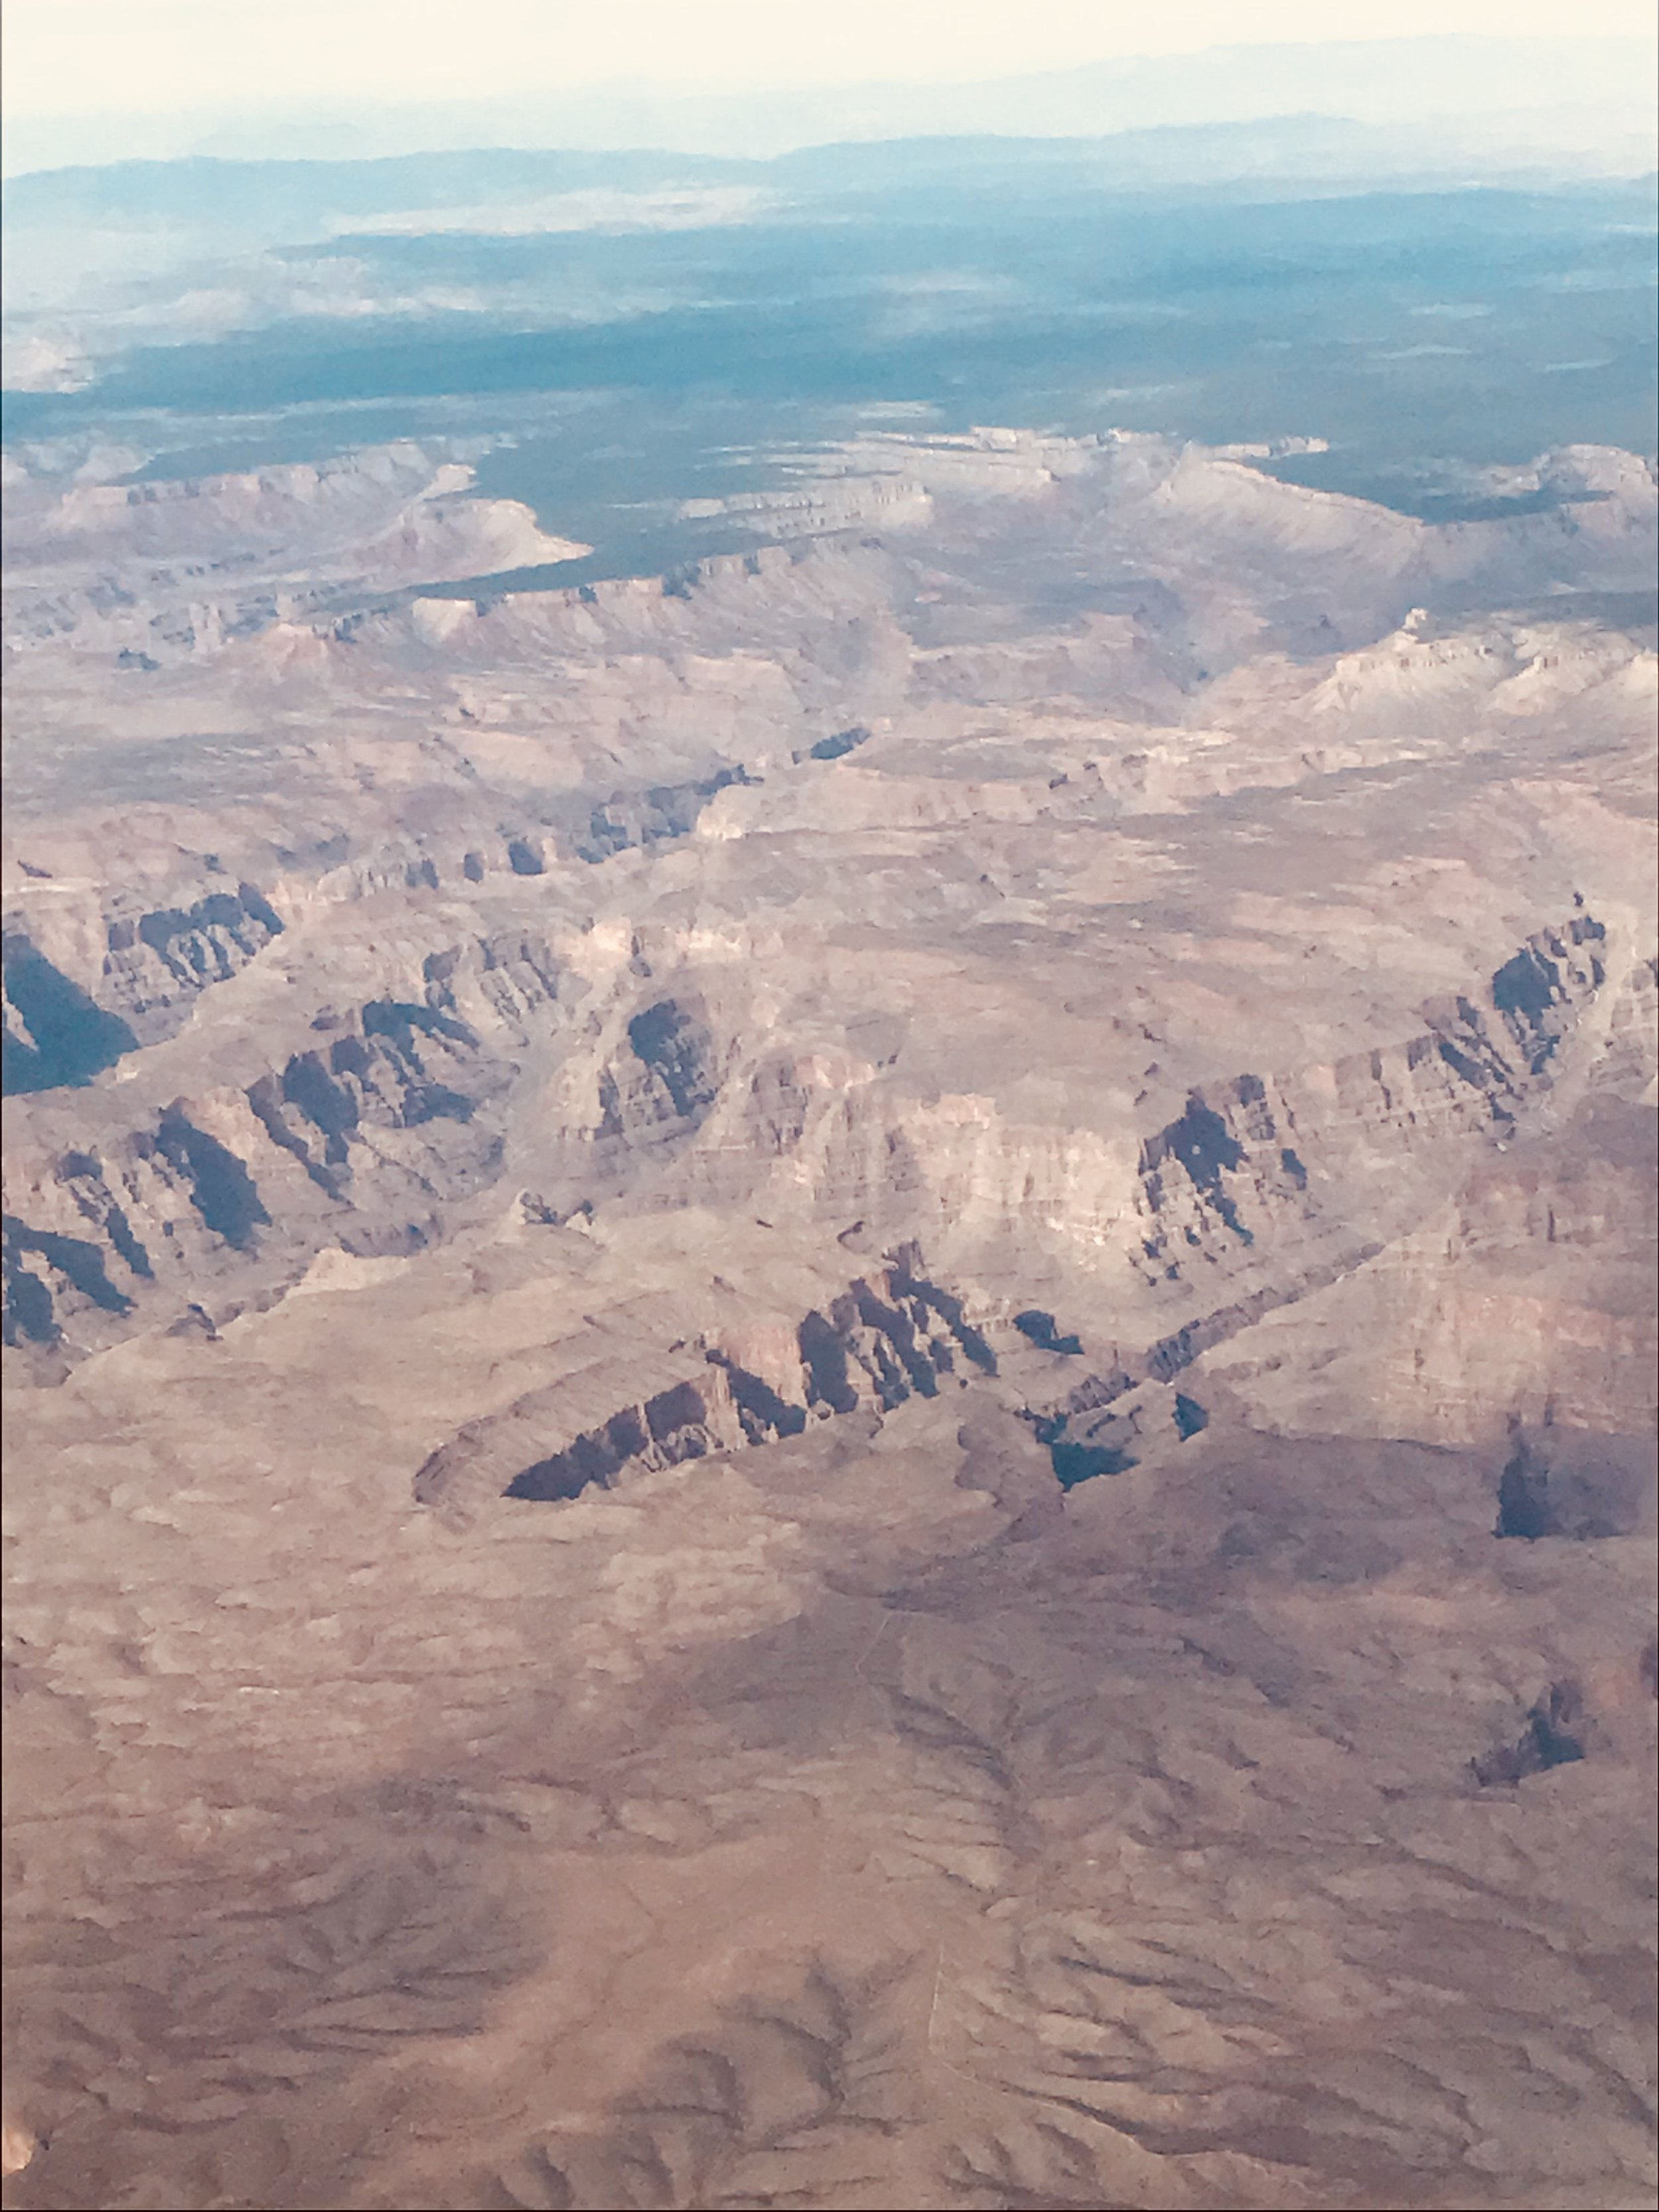 The Grand Canyon from the airplane